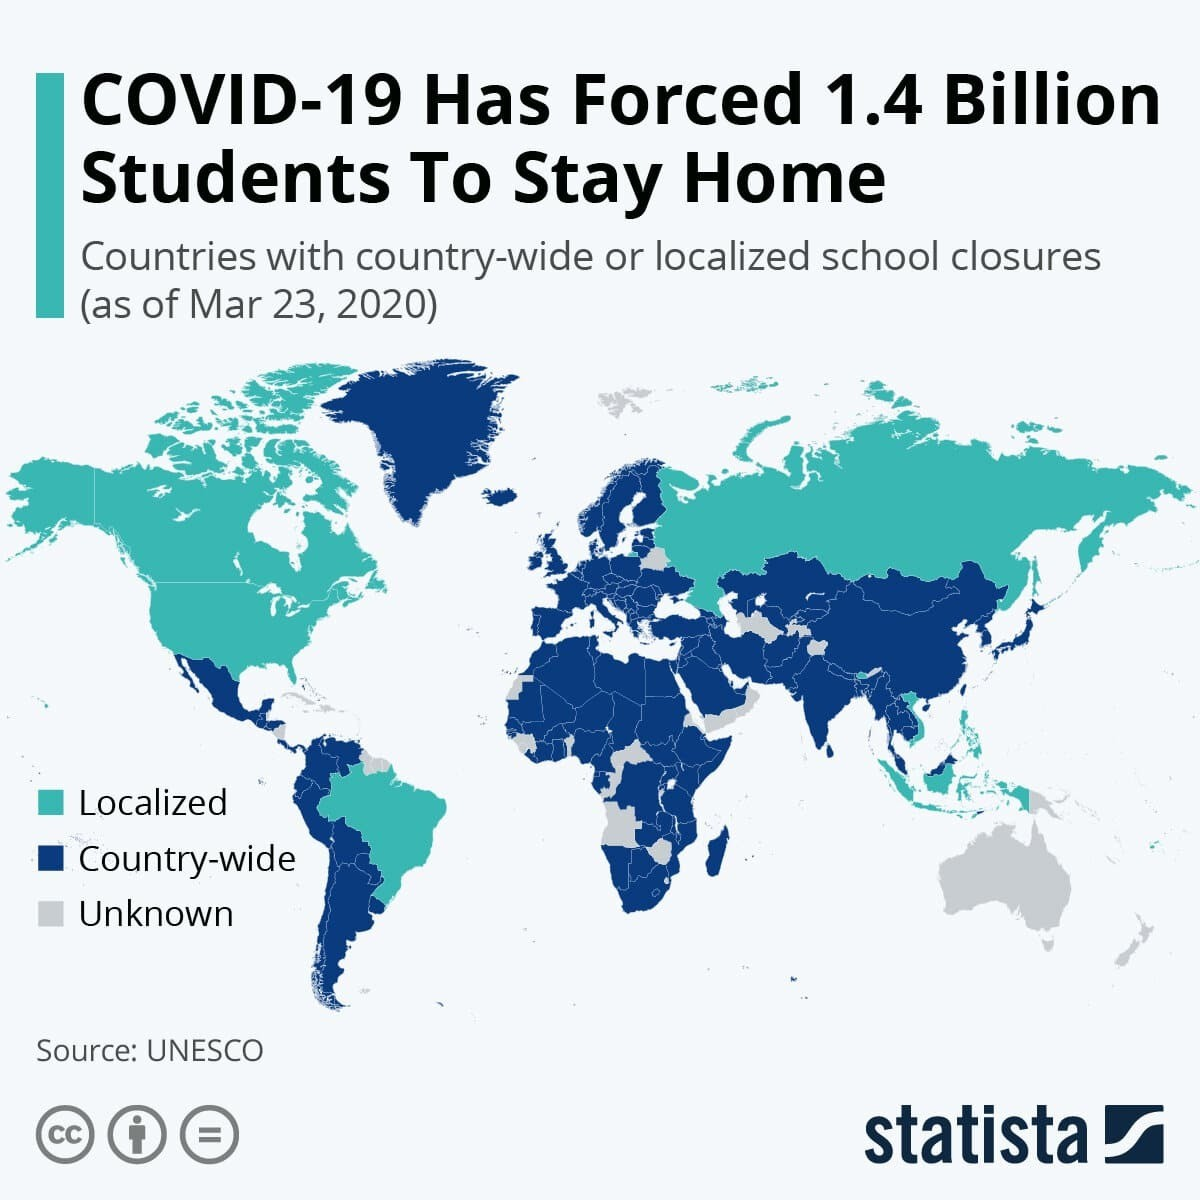 By March 2020, 1.4 billion students had already had their education disrupted